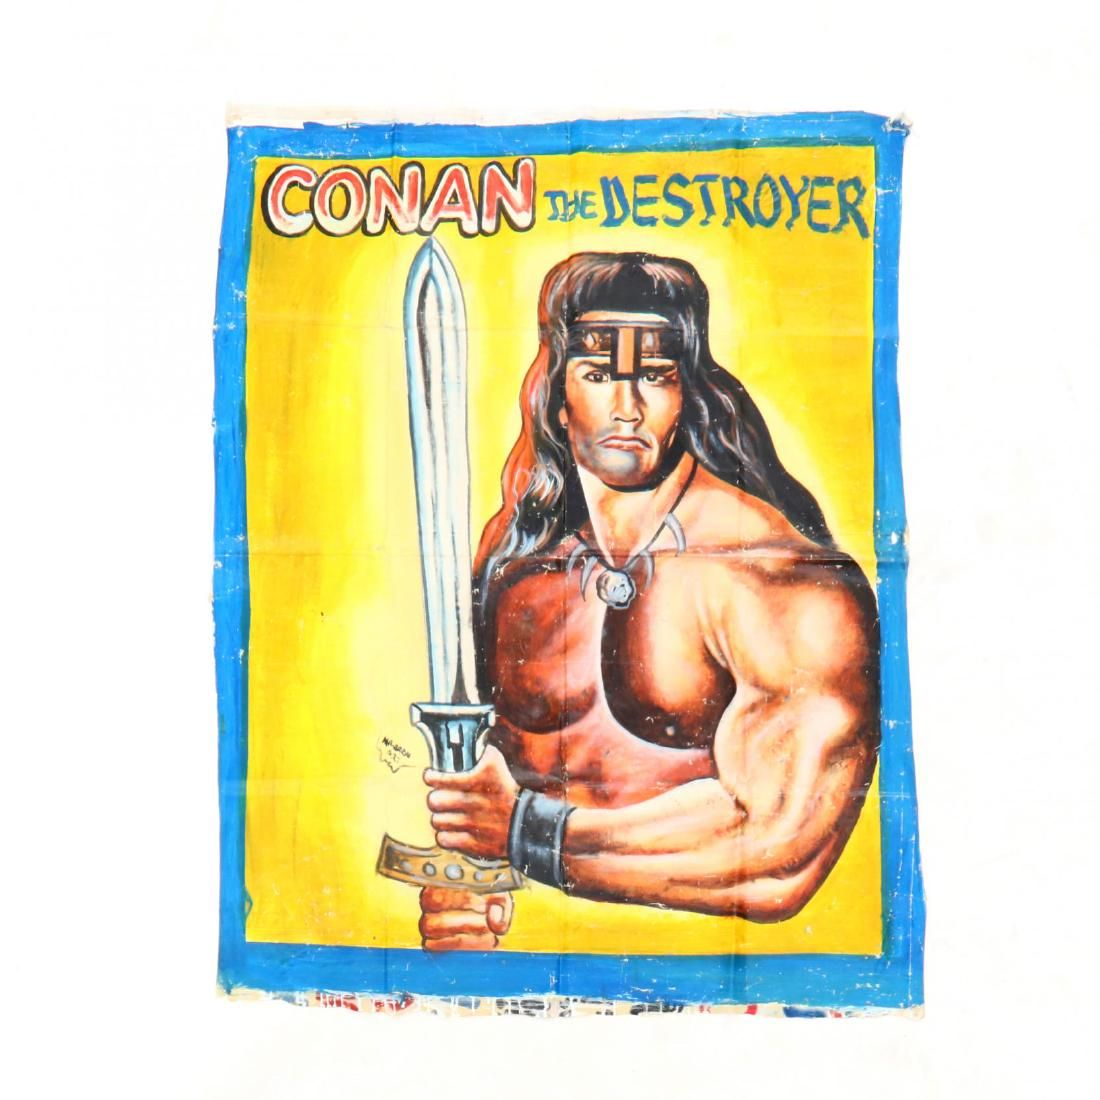 Vintage Ghana Movie Poster, Conan the Destroyer - Oct 03, 2018   Leland  Little Auctions in NC